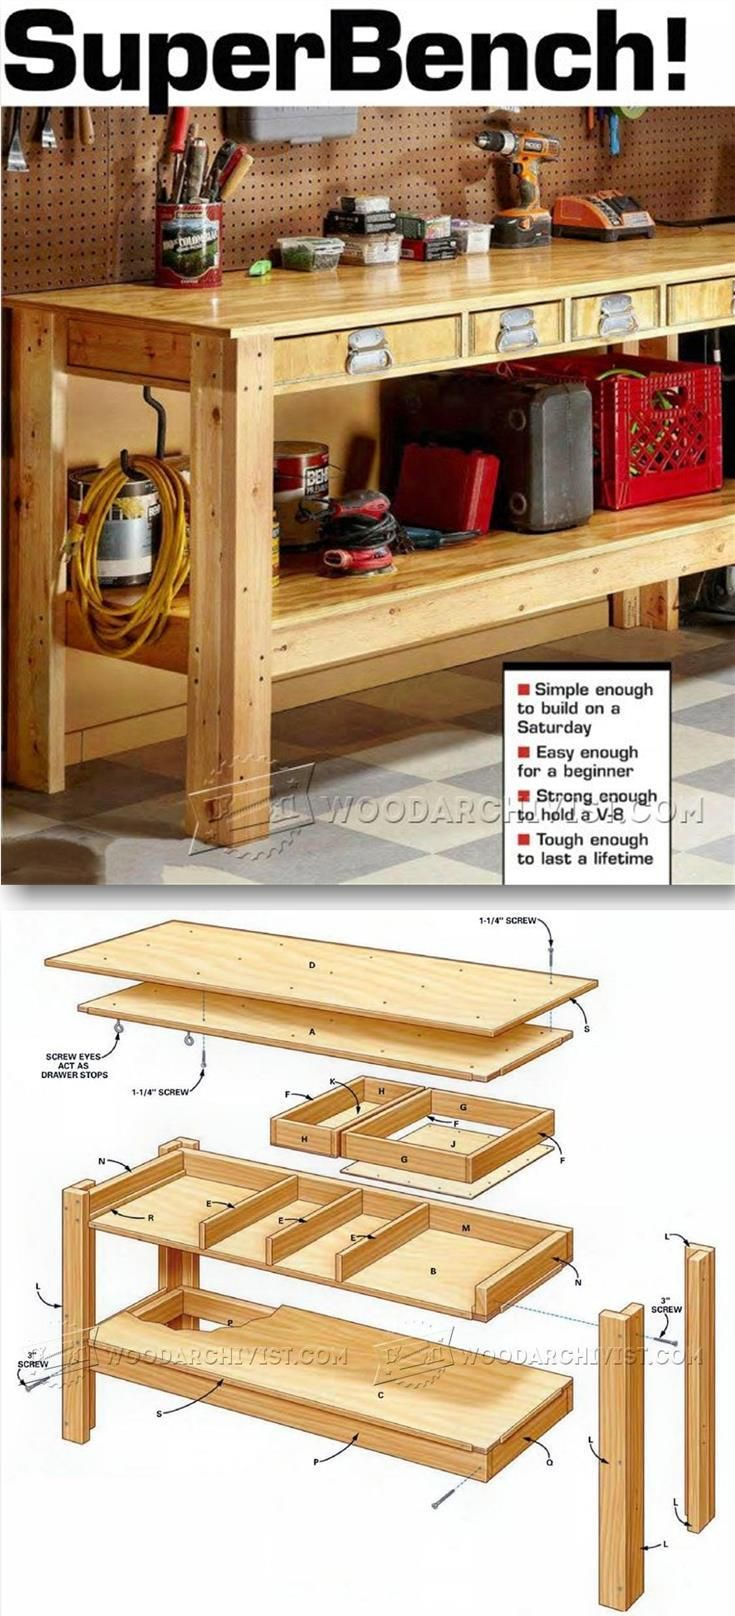 simple workbench plans workshop solutions projects tips and tricks woodarchivistcom - Workbench Design Ideas